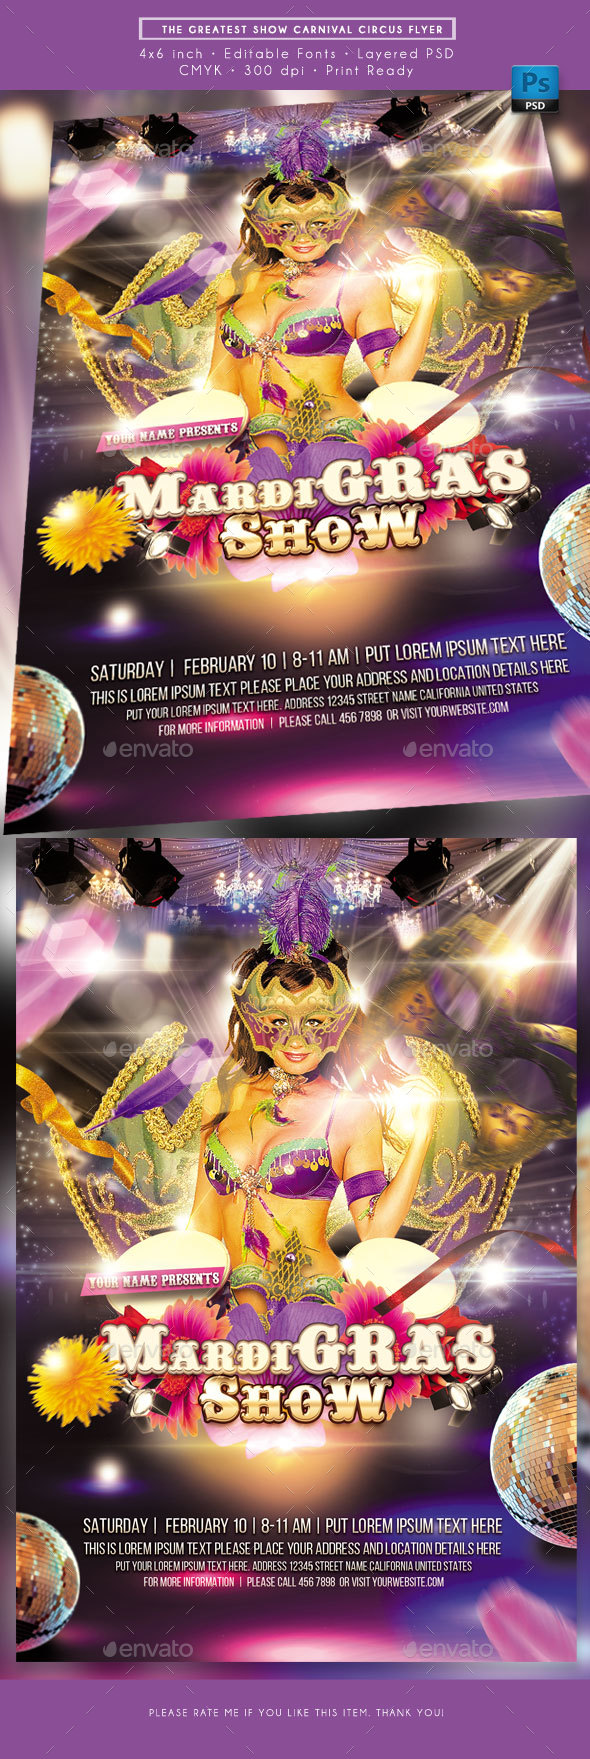 Mardi Gras Show Flyer - Holidays Events